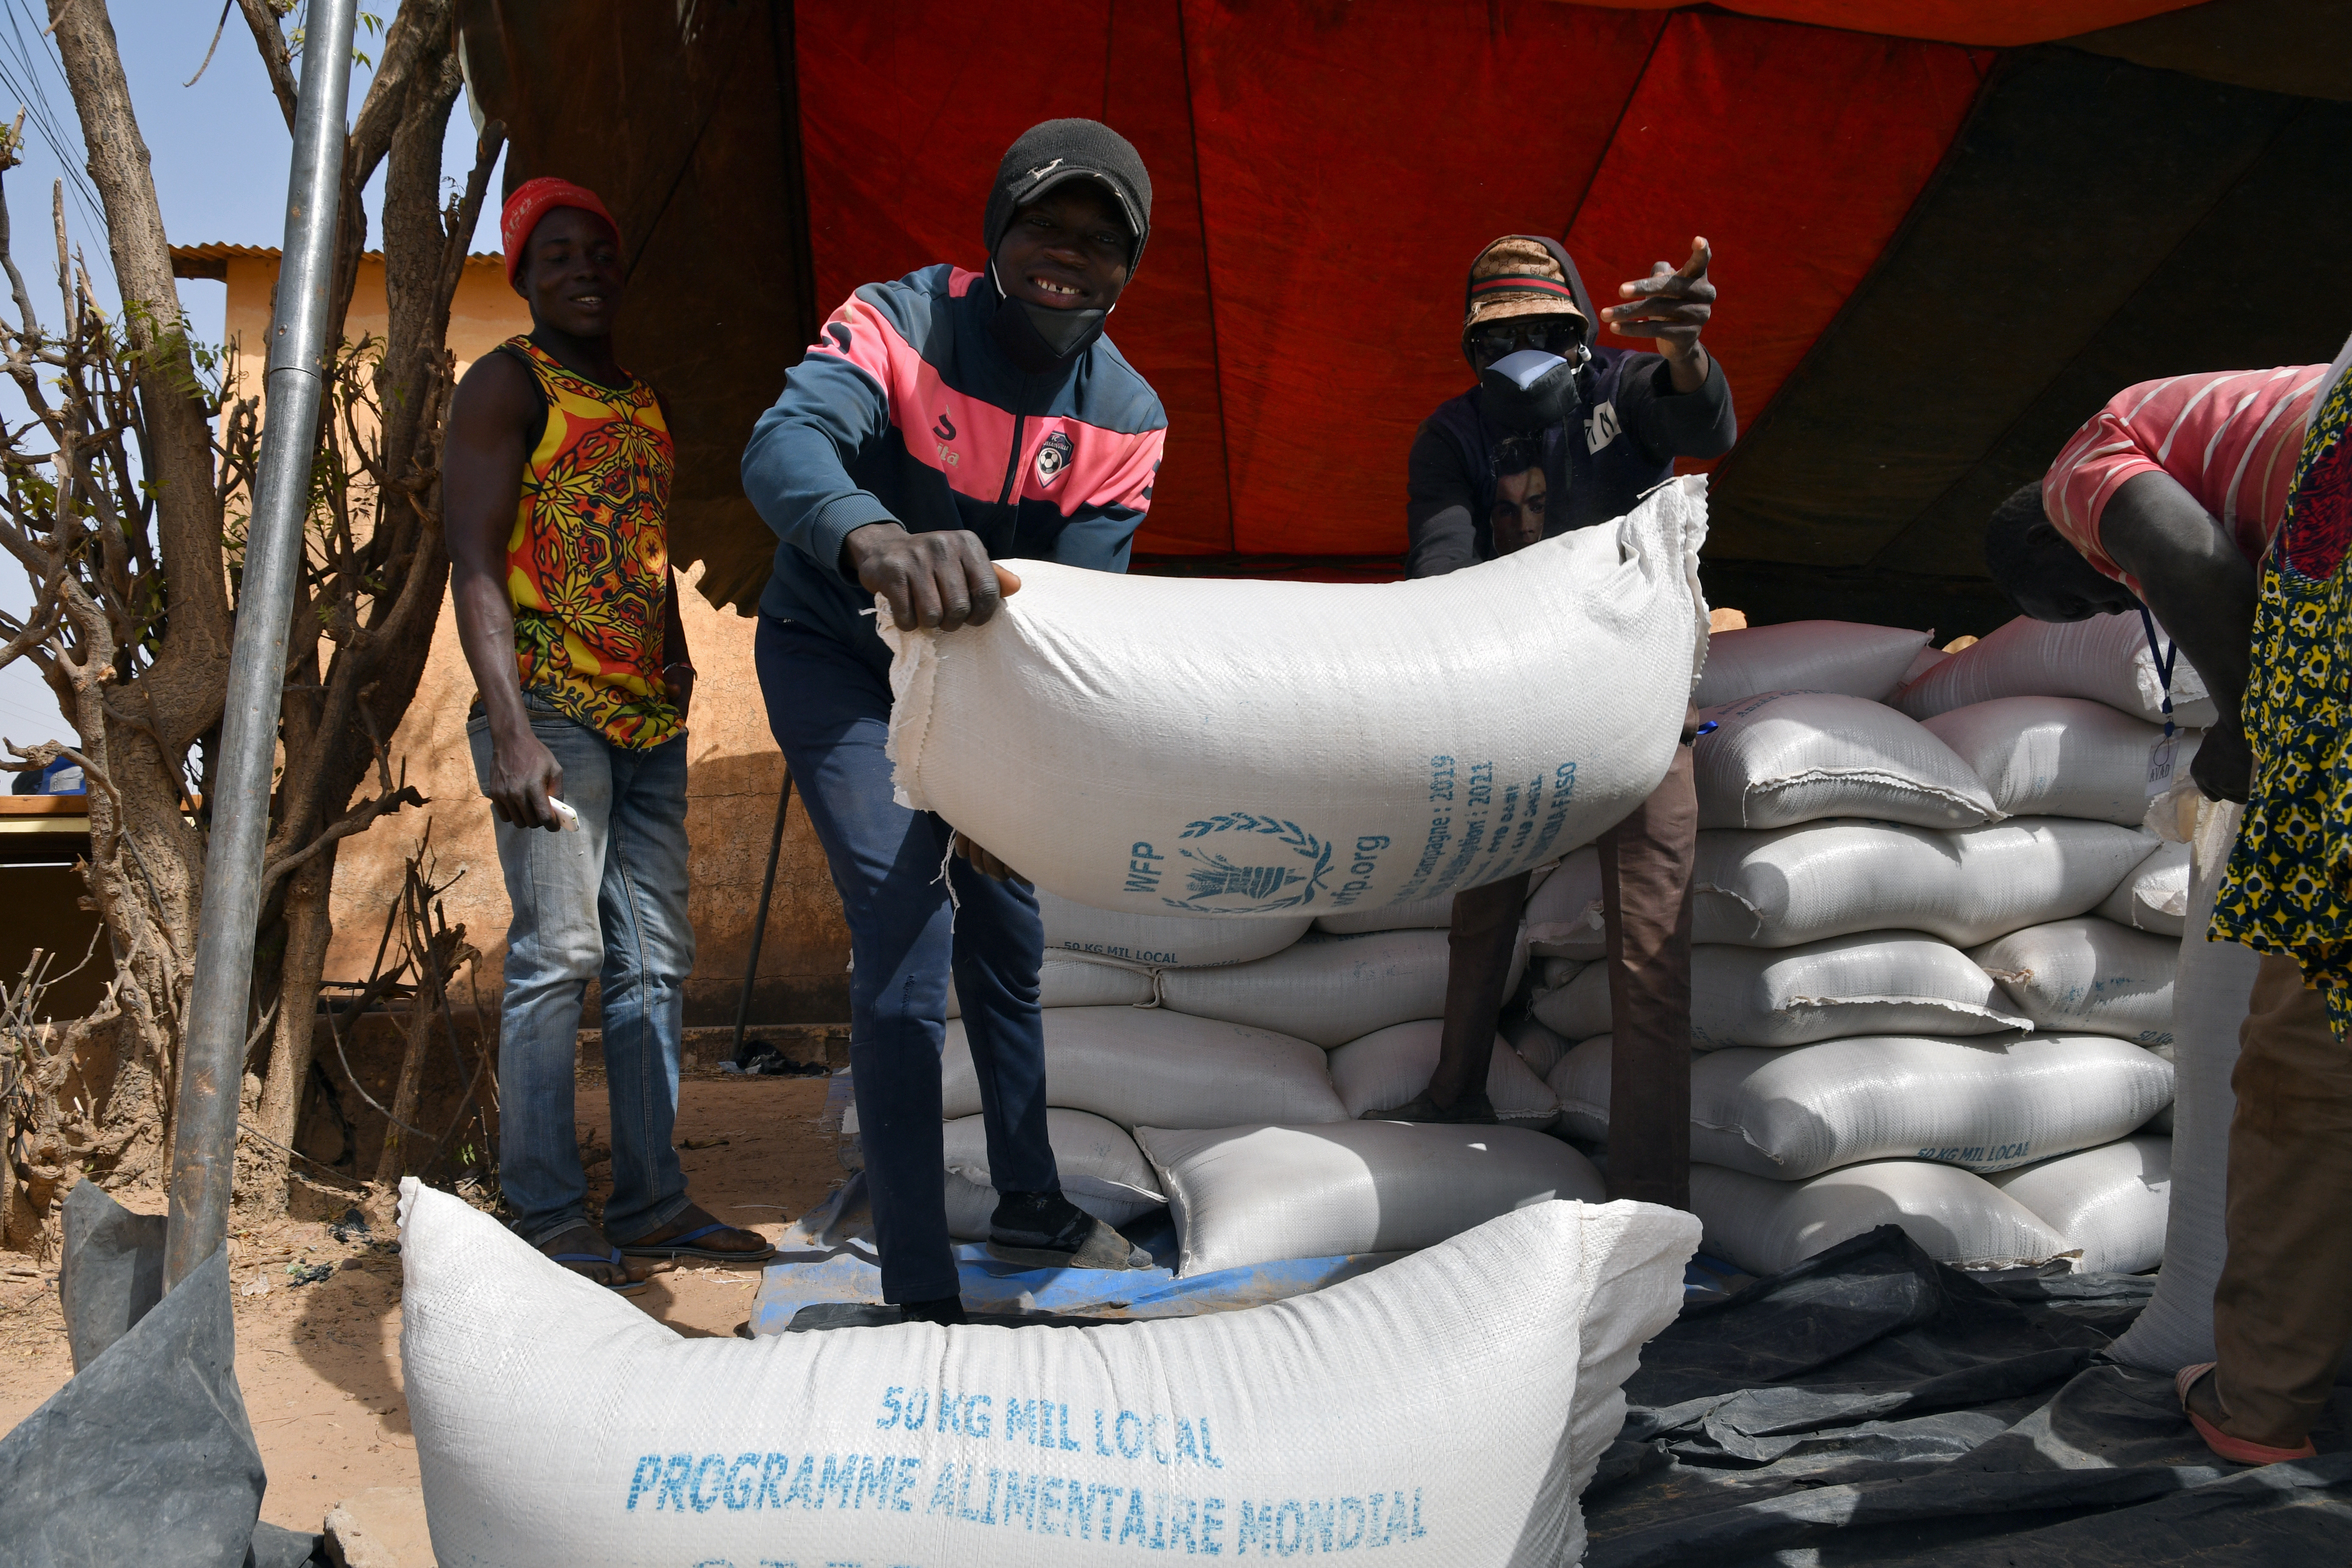 Workers carry the aid provided by the World Food Programme (WFP) for distribution in Pissila, Burkina Faso January 24, 2020. Picture taken January 24, 2020. REUTERS/Anne Mimault - RC21PE9DV74I